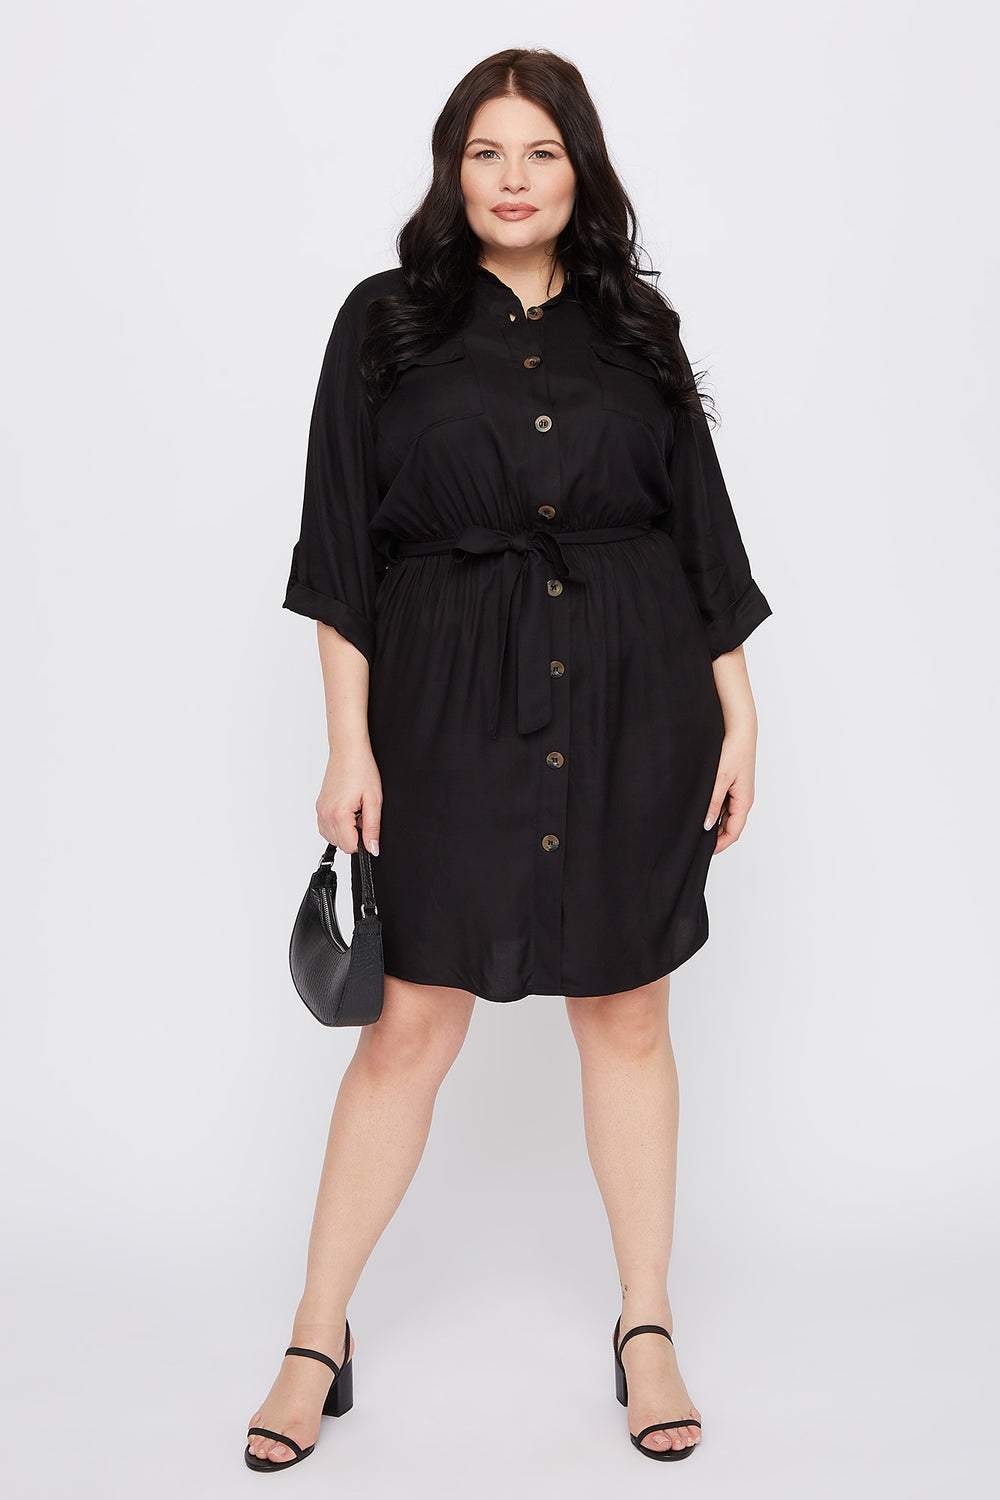 Plus Size Button-Up Shirt Dress Black